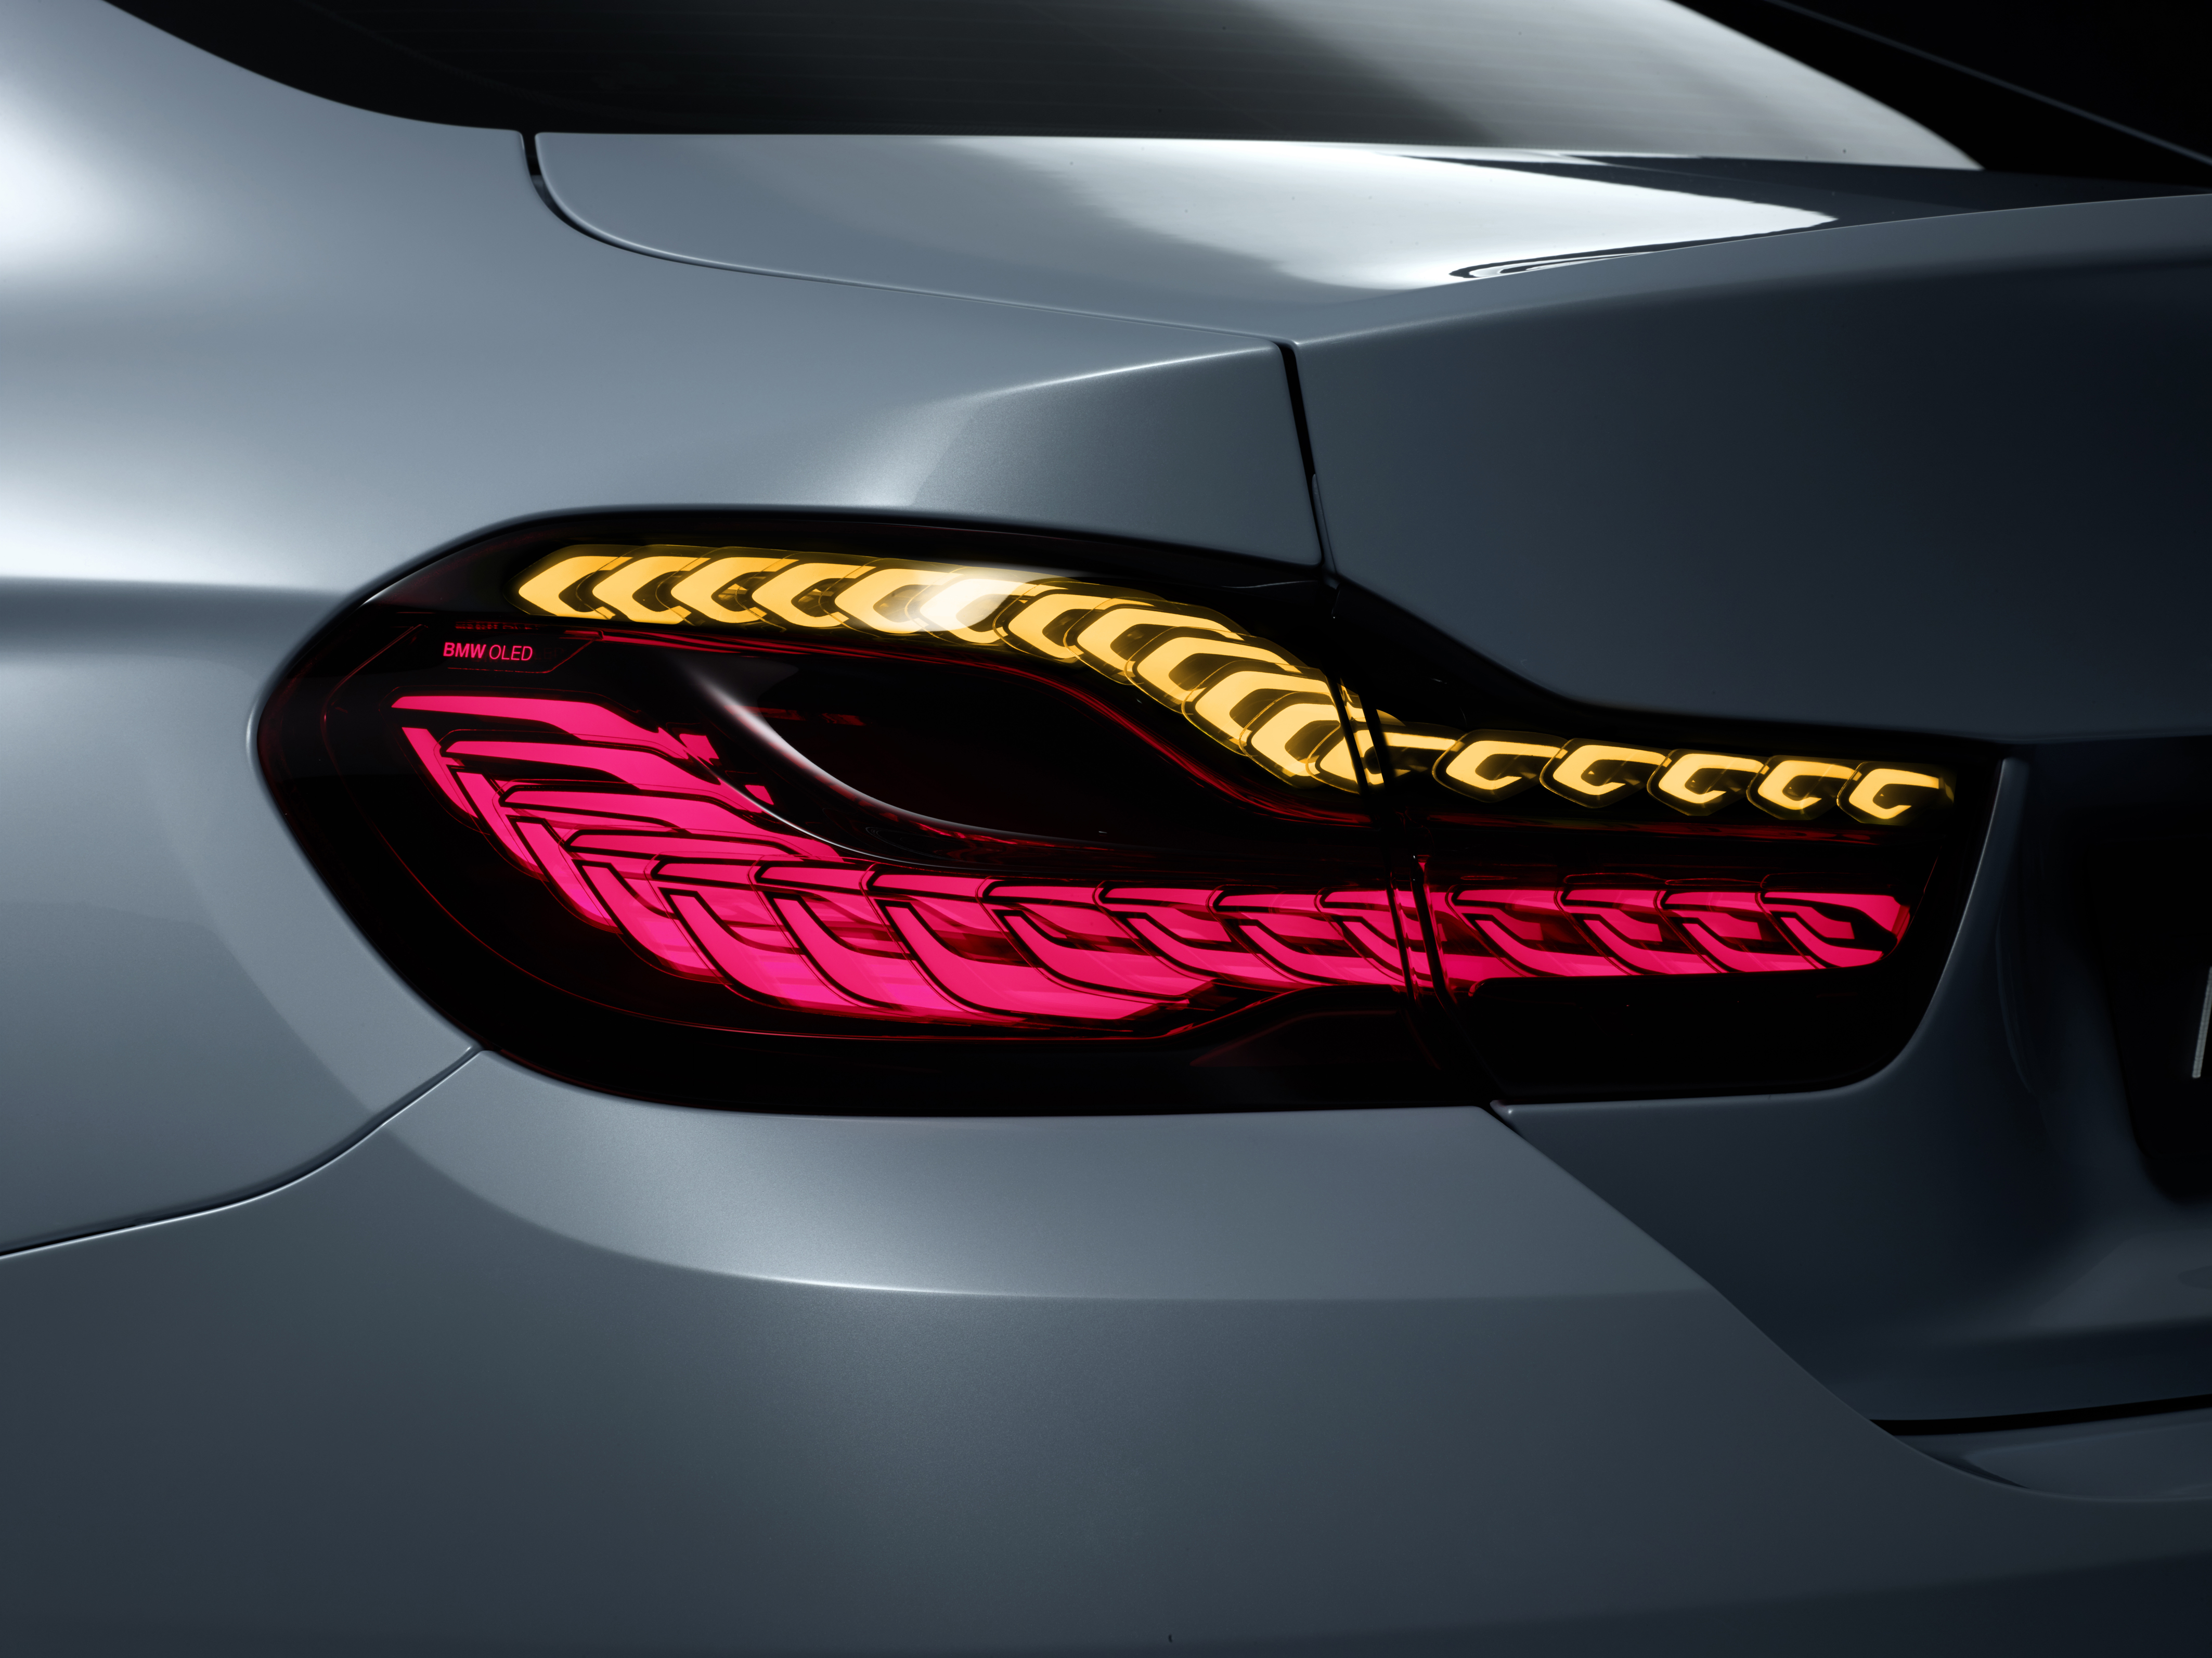 iconic lighting. CES 2015: BMW M4 Concept Iconic Lights Showcases Laser And OLED Technology For Automotive Lighting